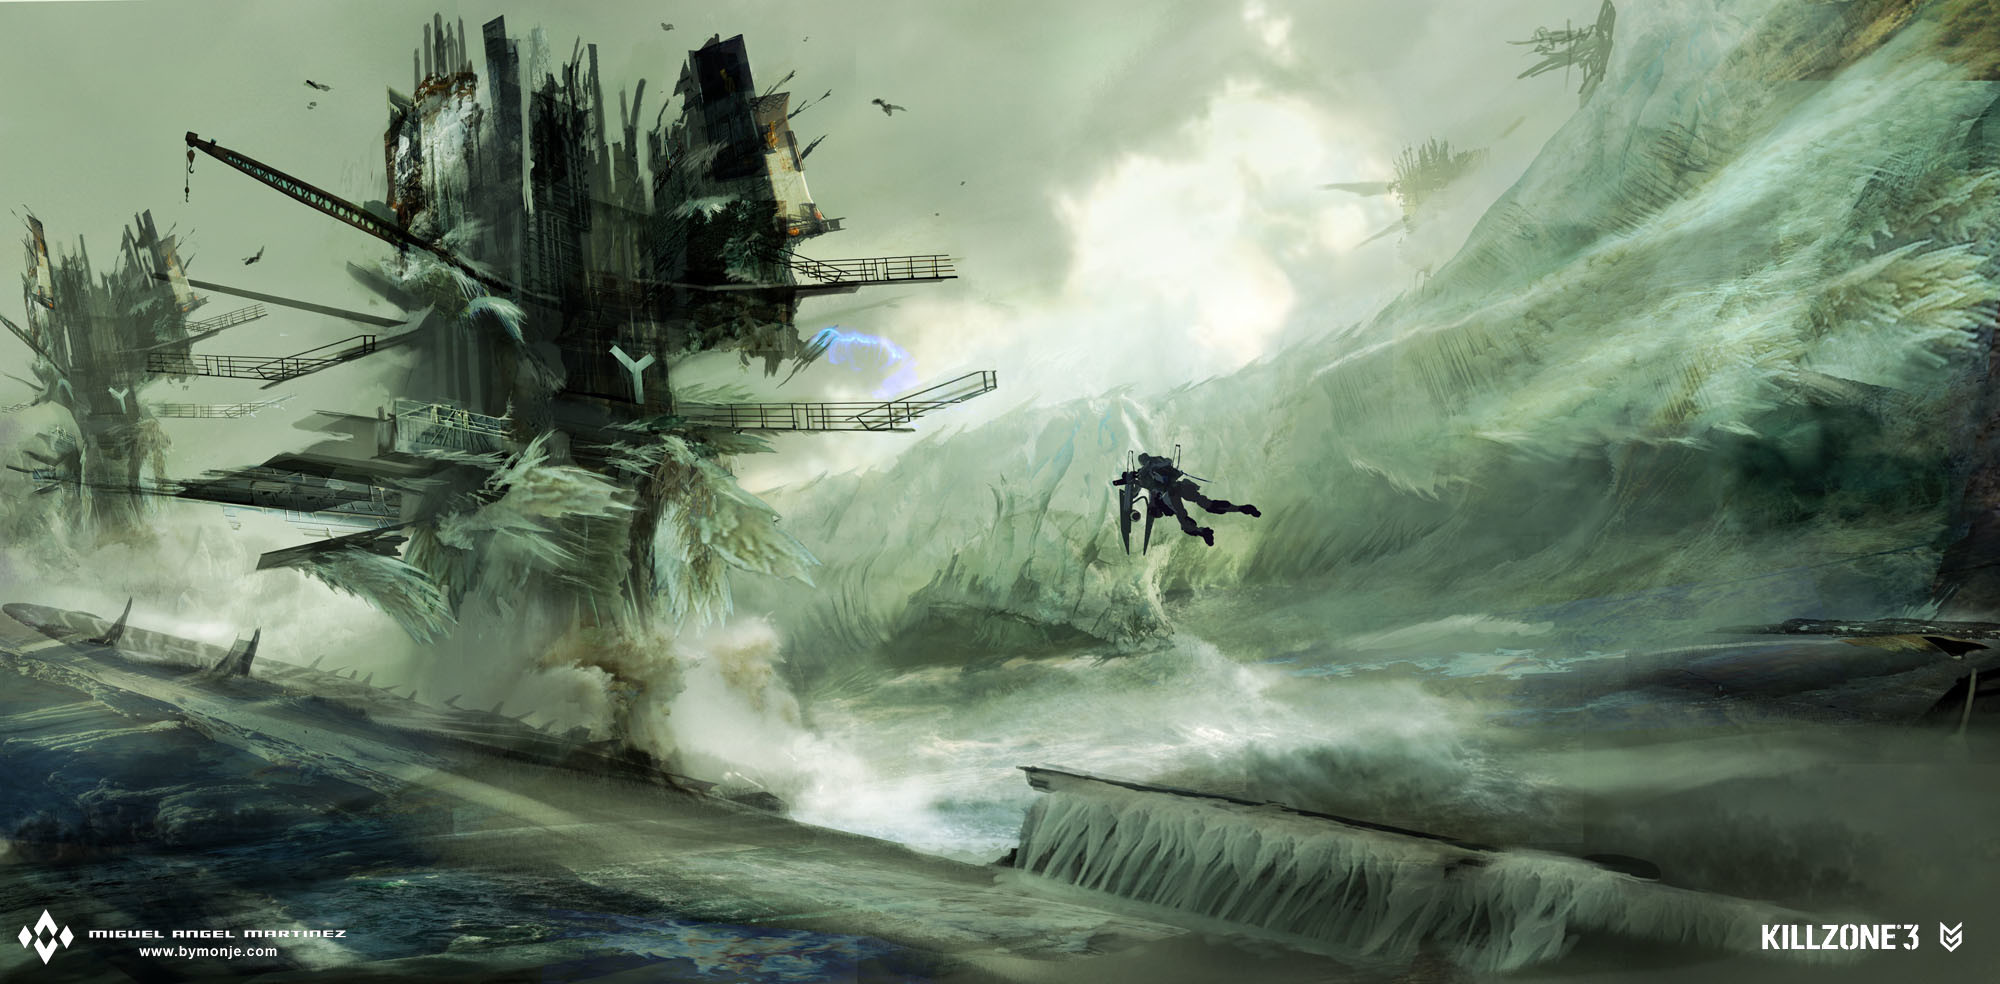 killzone 3 ice petrusite rig platform concept art miguel bymonje